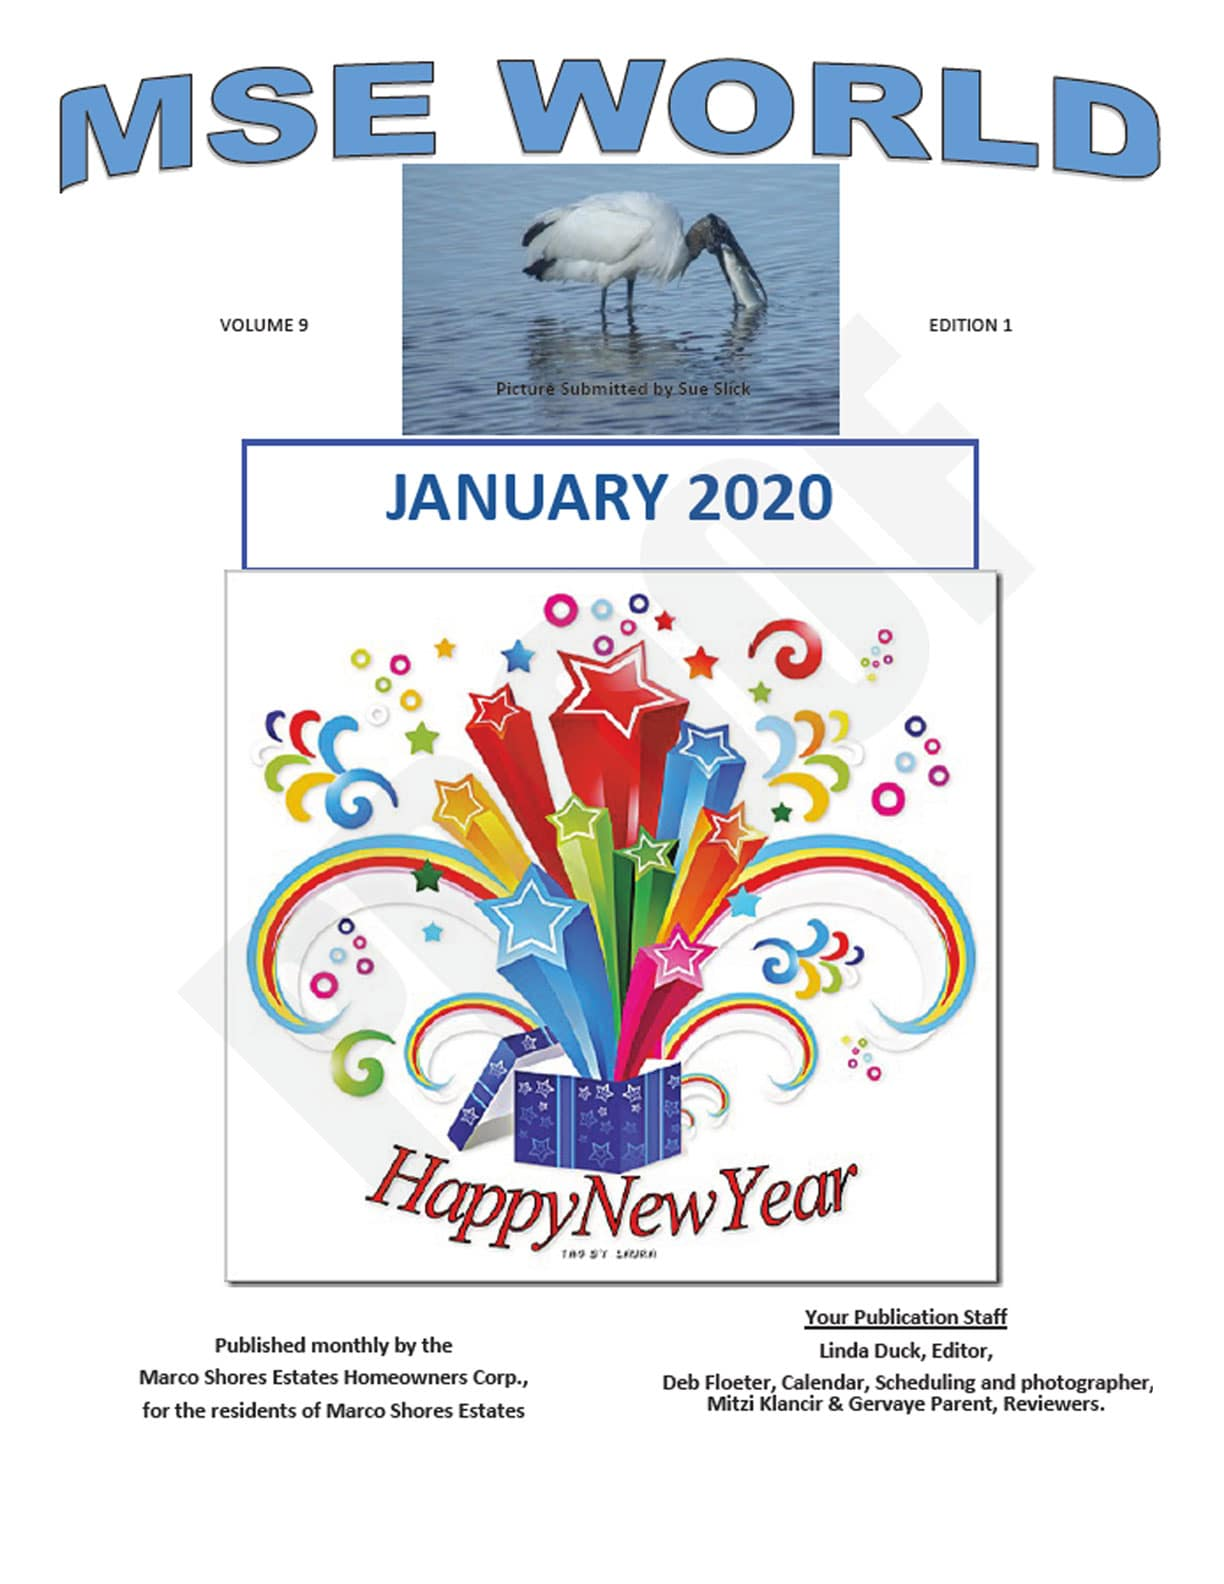 MSE World January 2020 Edition